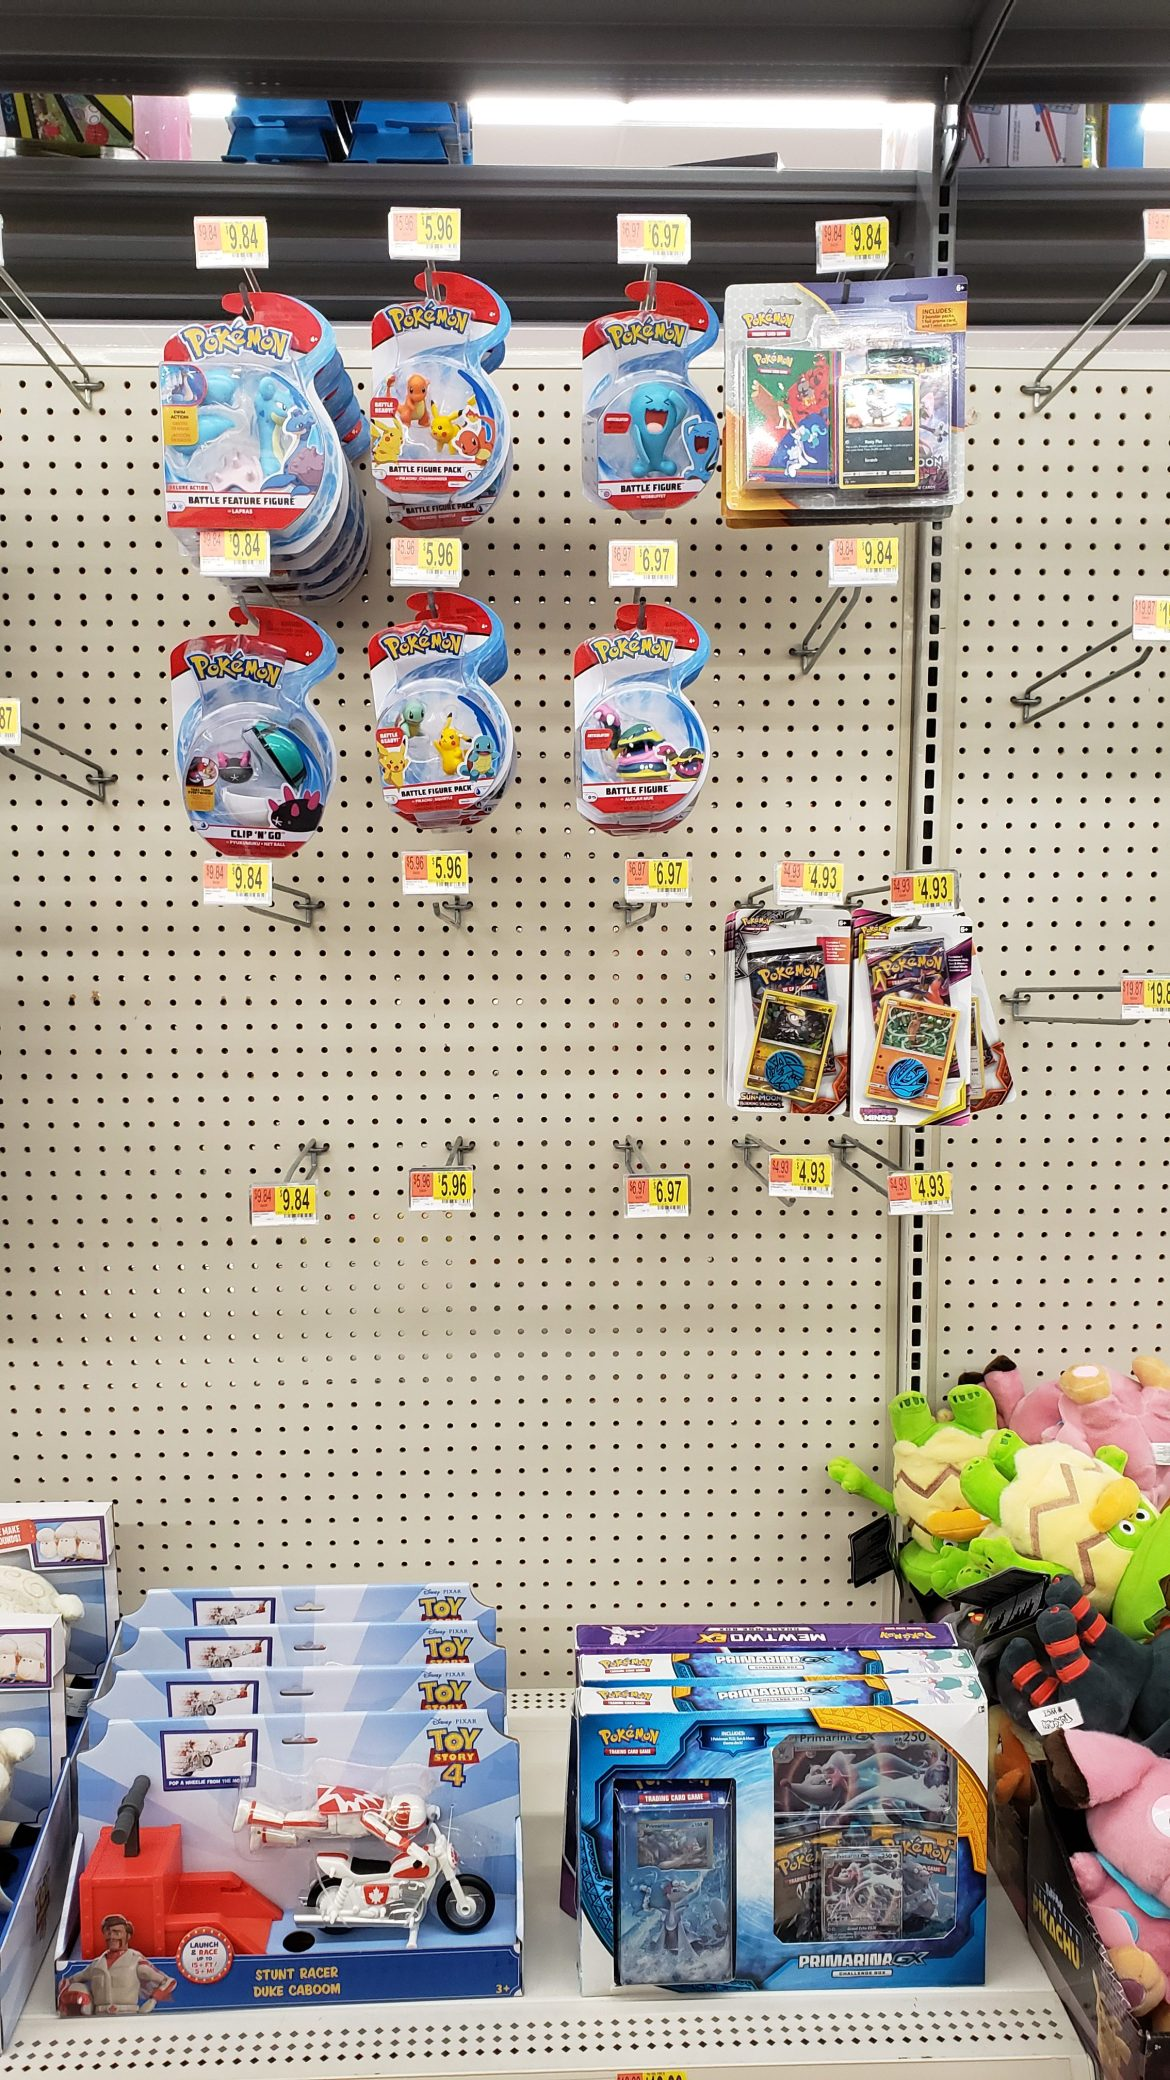 Mega Construx No Longer at Walmart Stores?